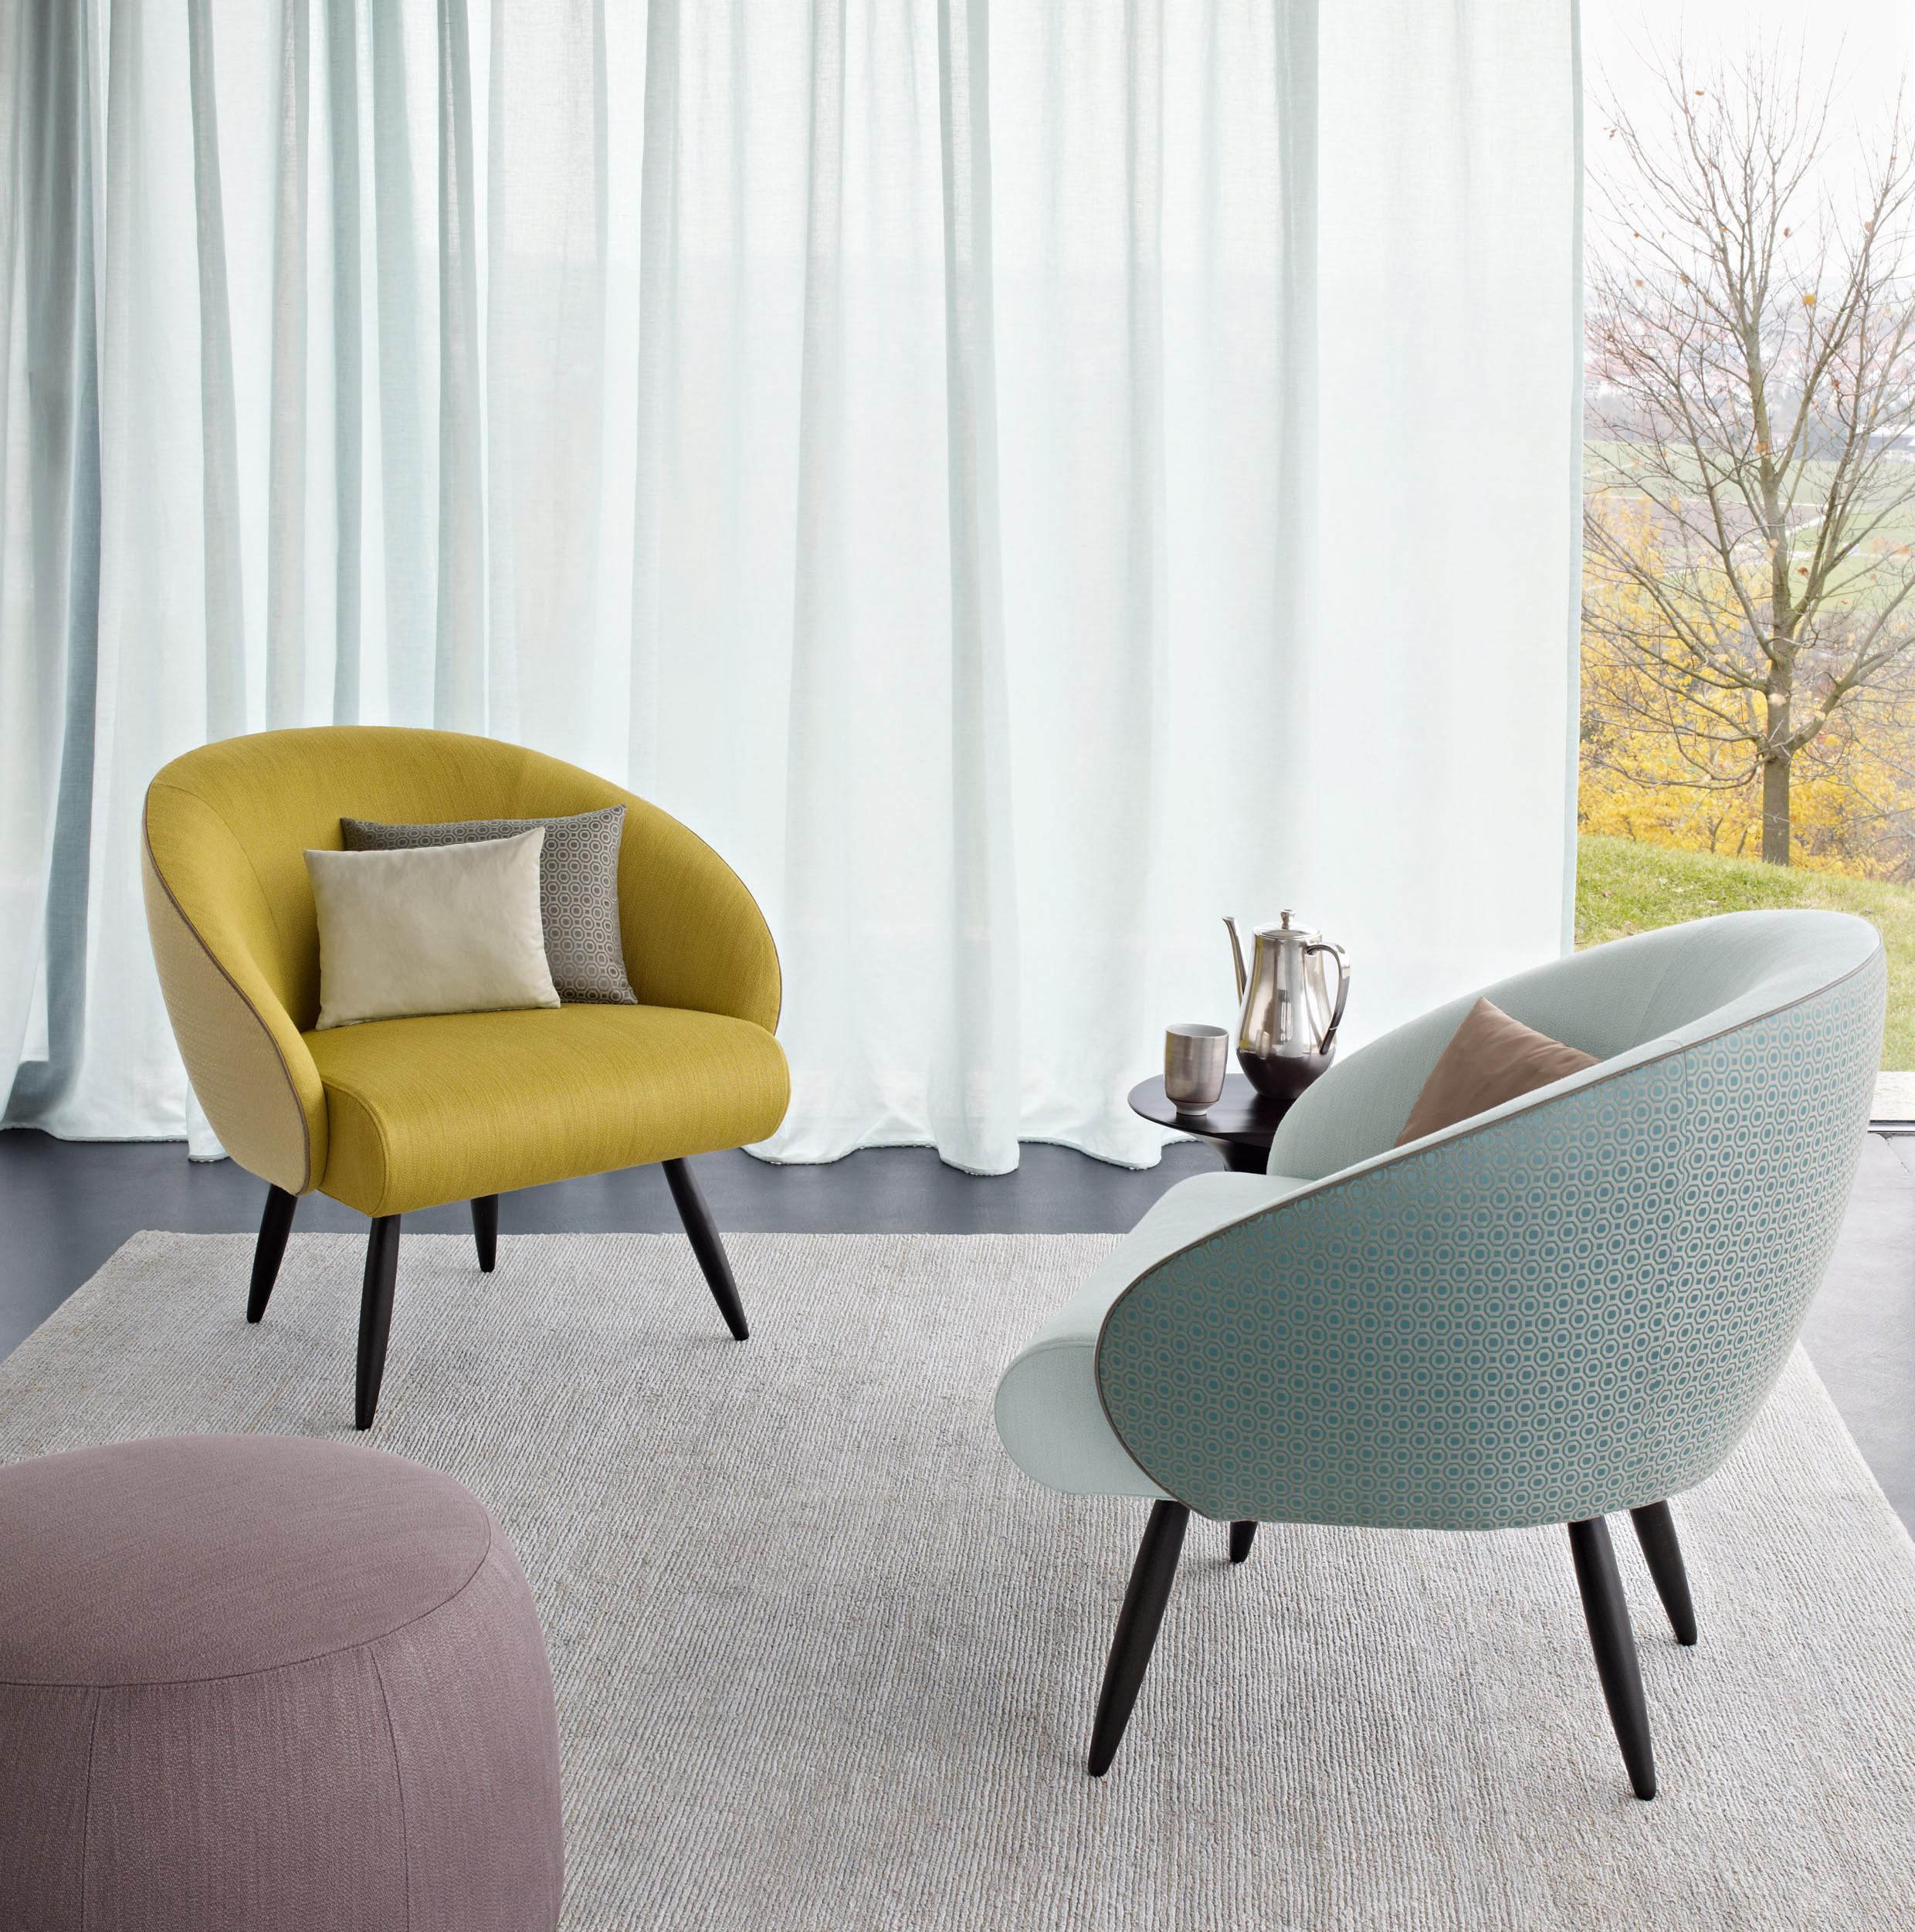 Club chair lounge chairs from zimmer rohde architonic for Seating room furniture